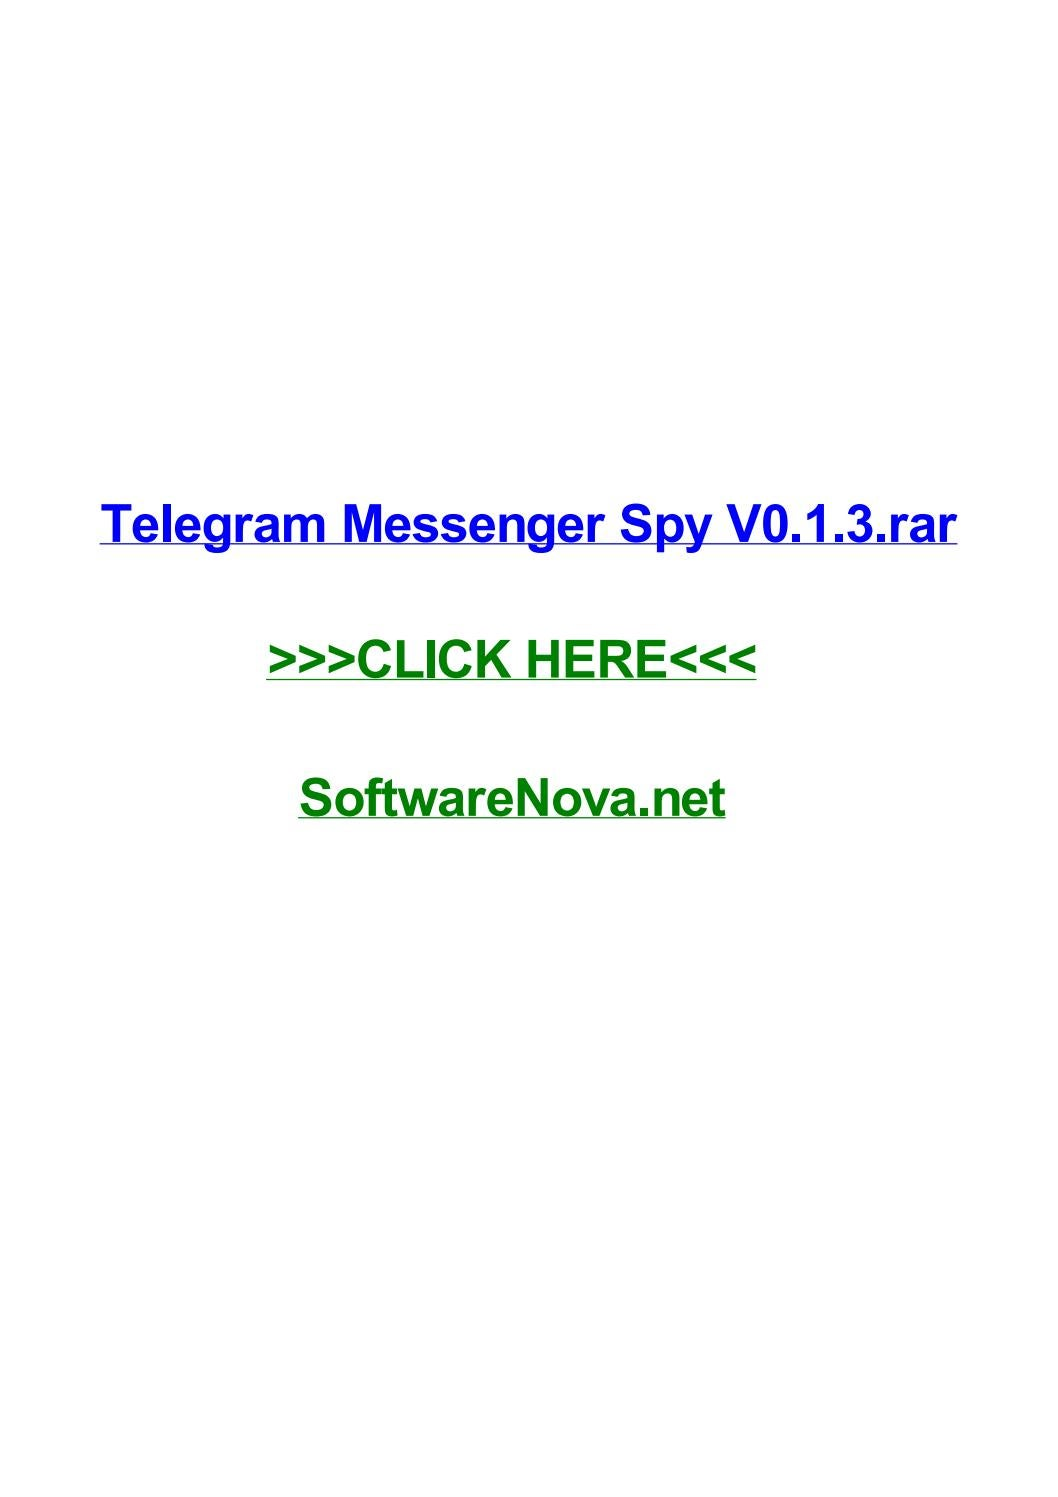 instal invisable spy ware on spouse cell phone